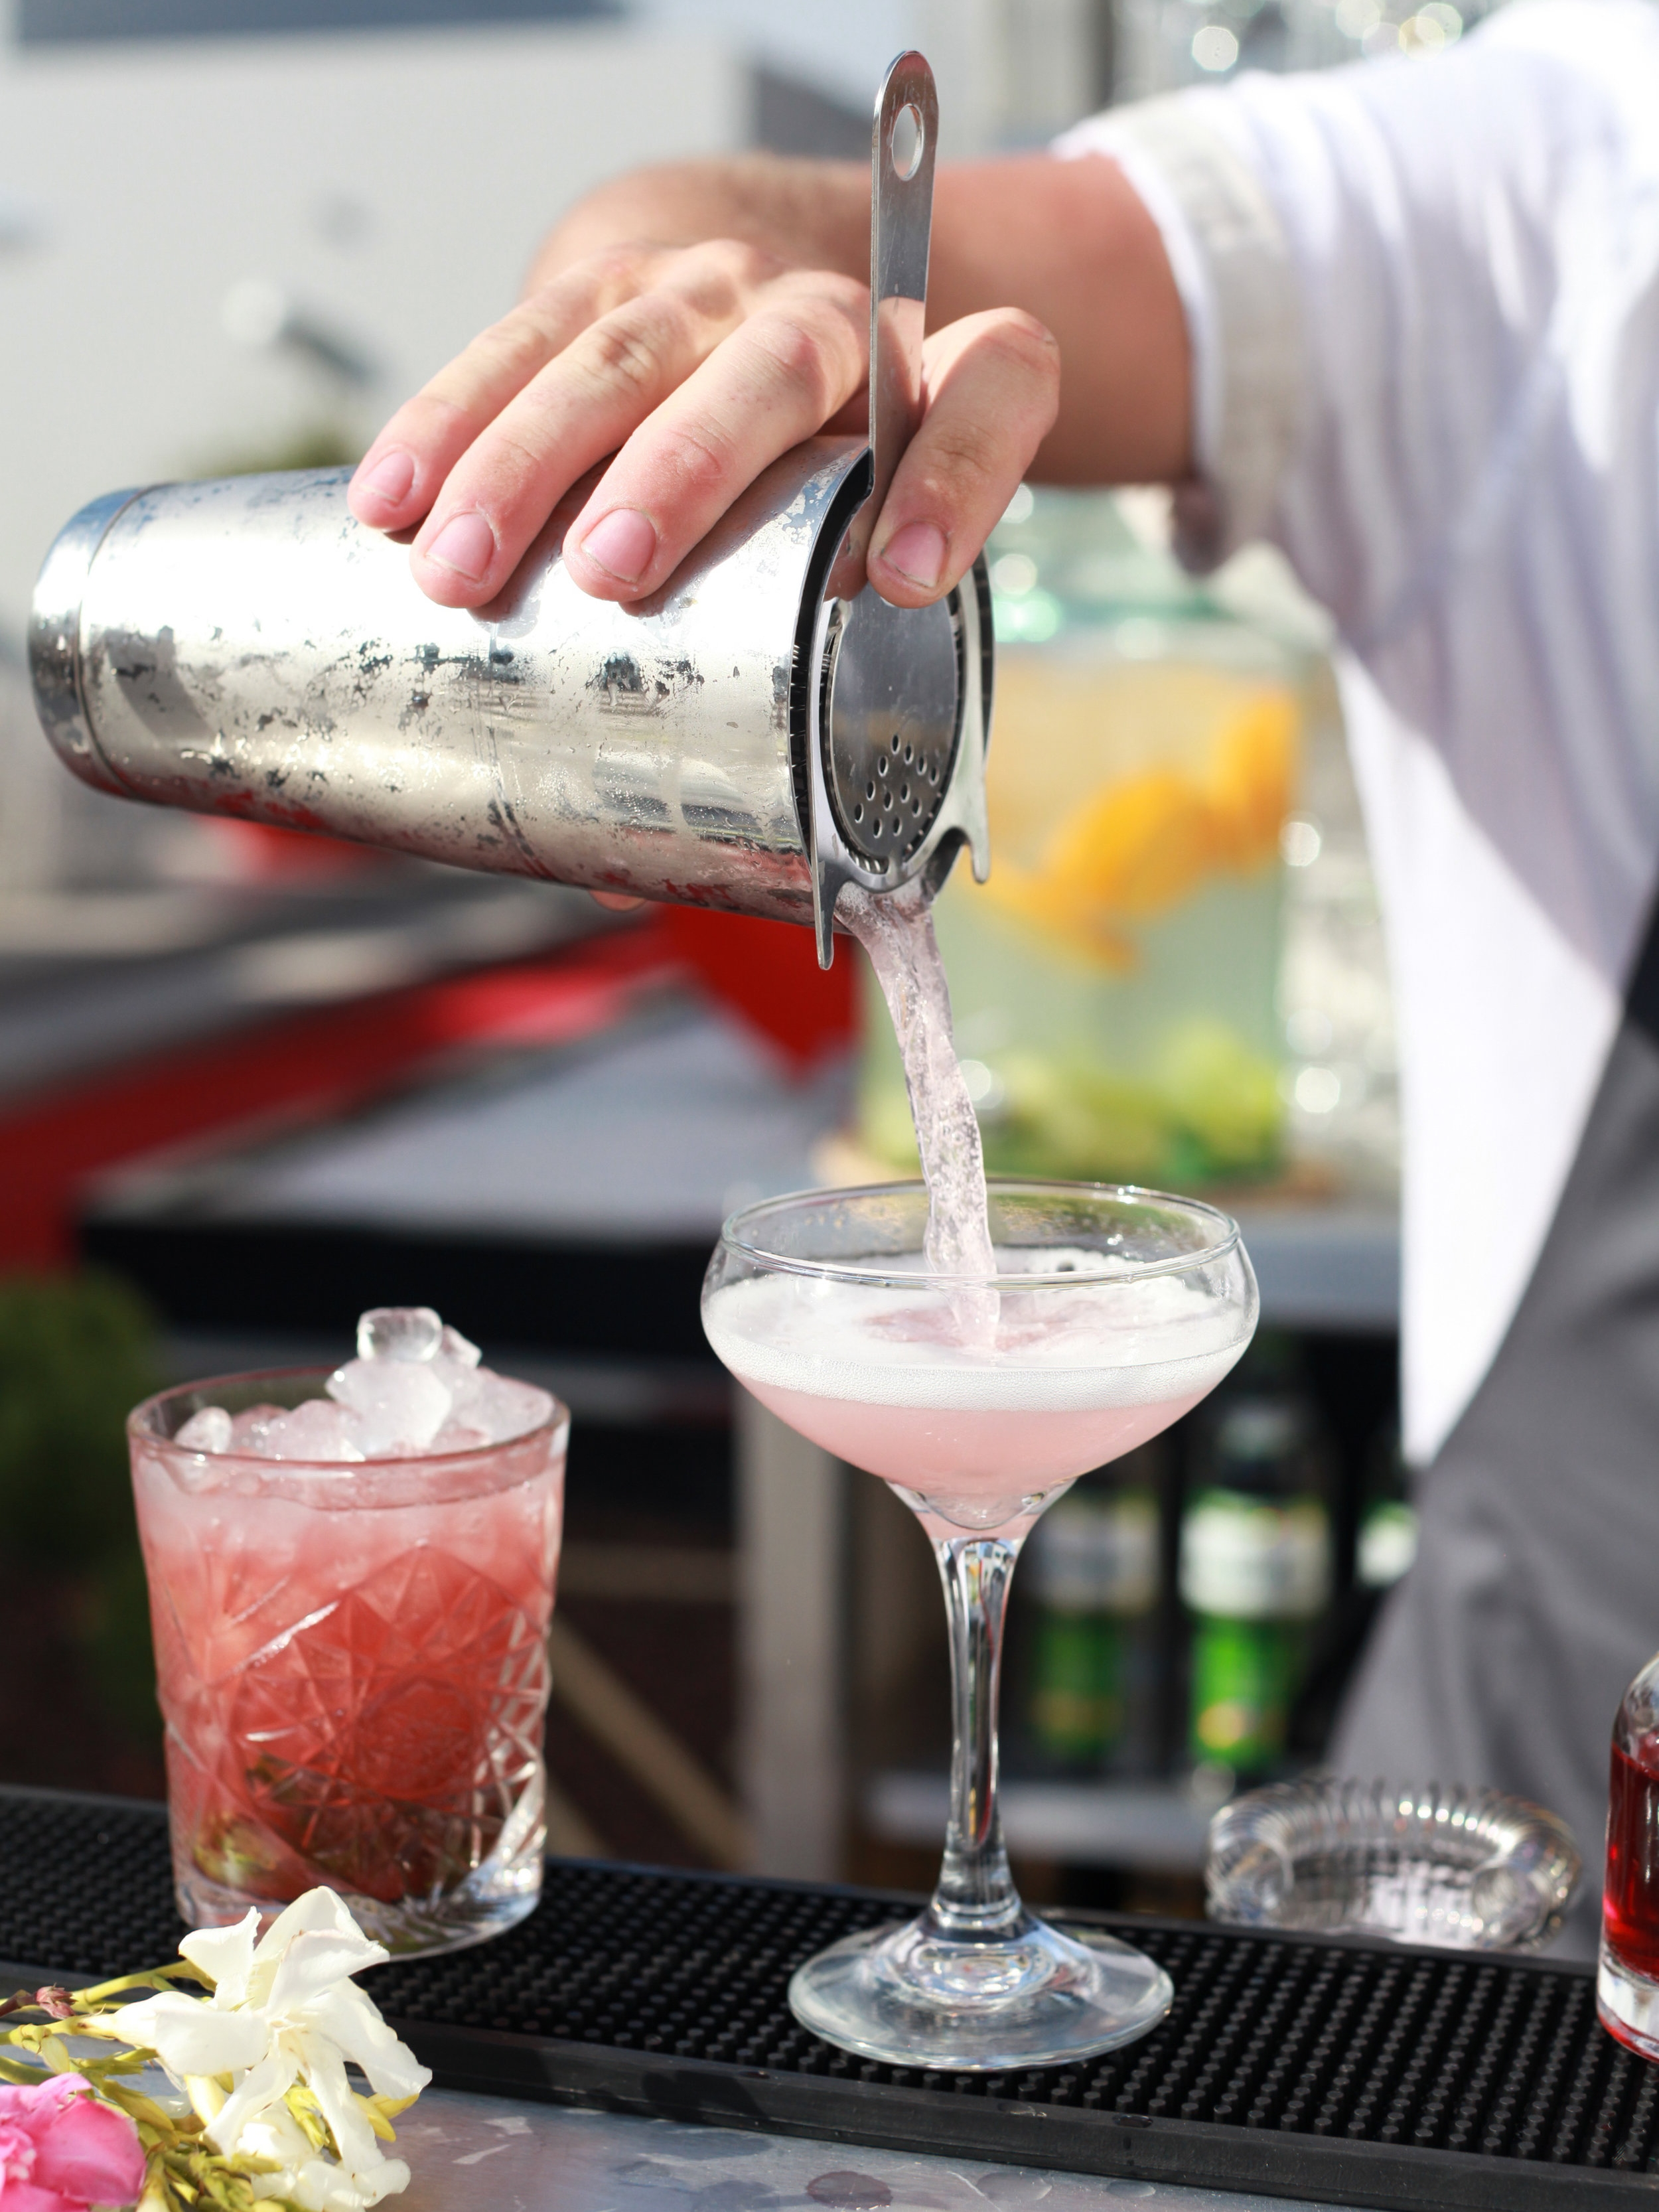 Bar Hire - We provide mobile bars, mixologists, refrigeration, garnishes, glassware and more